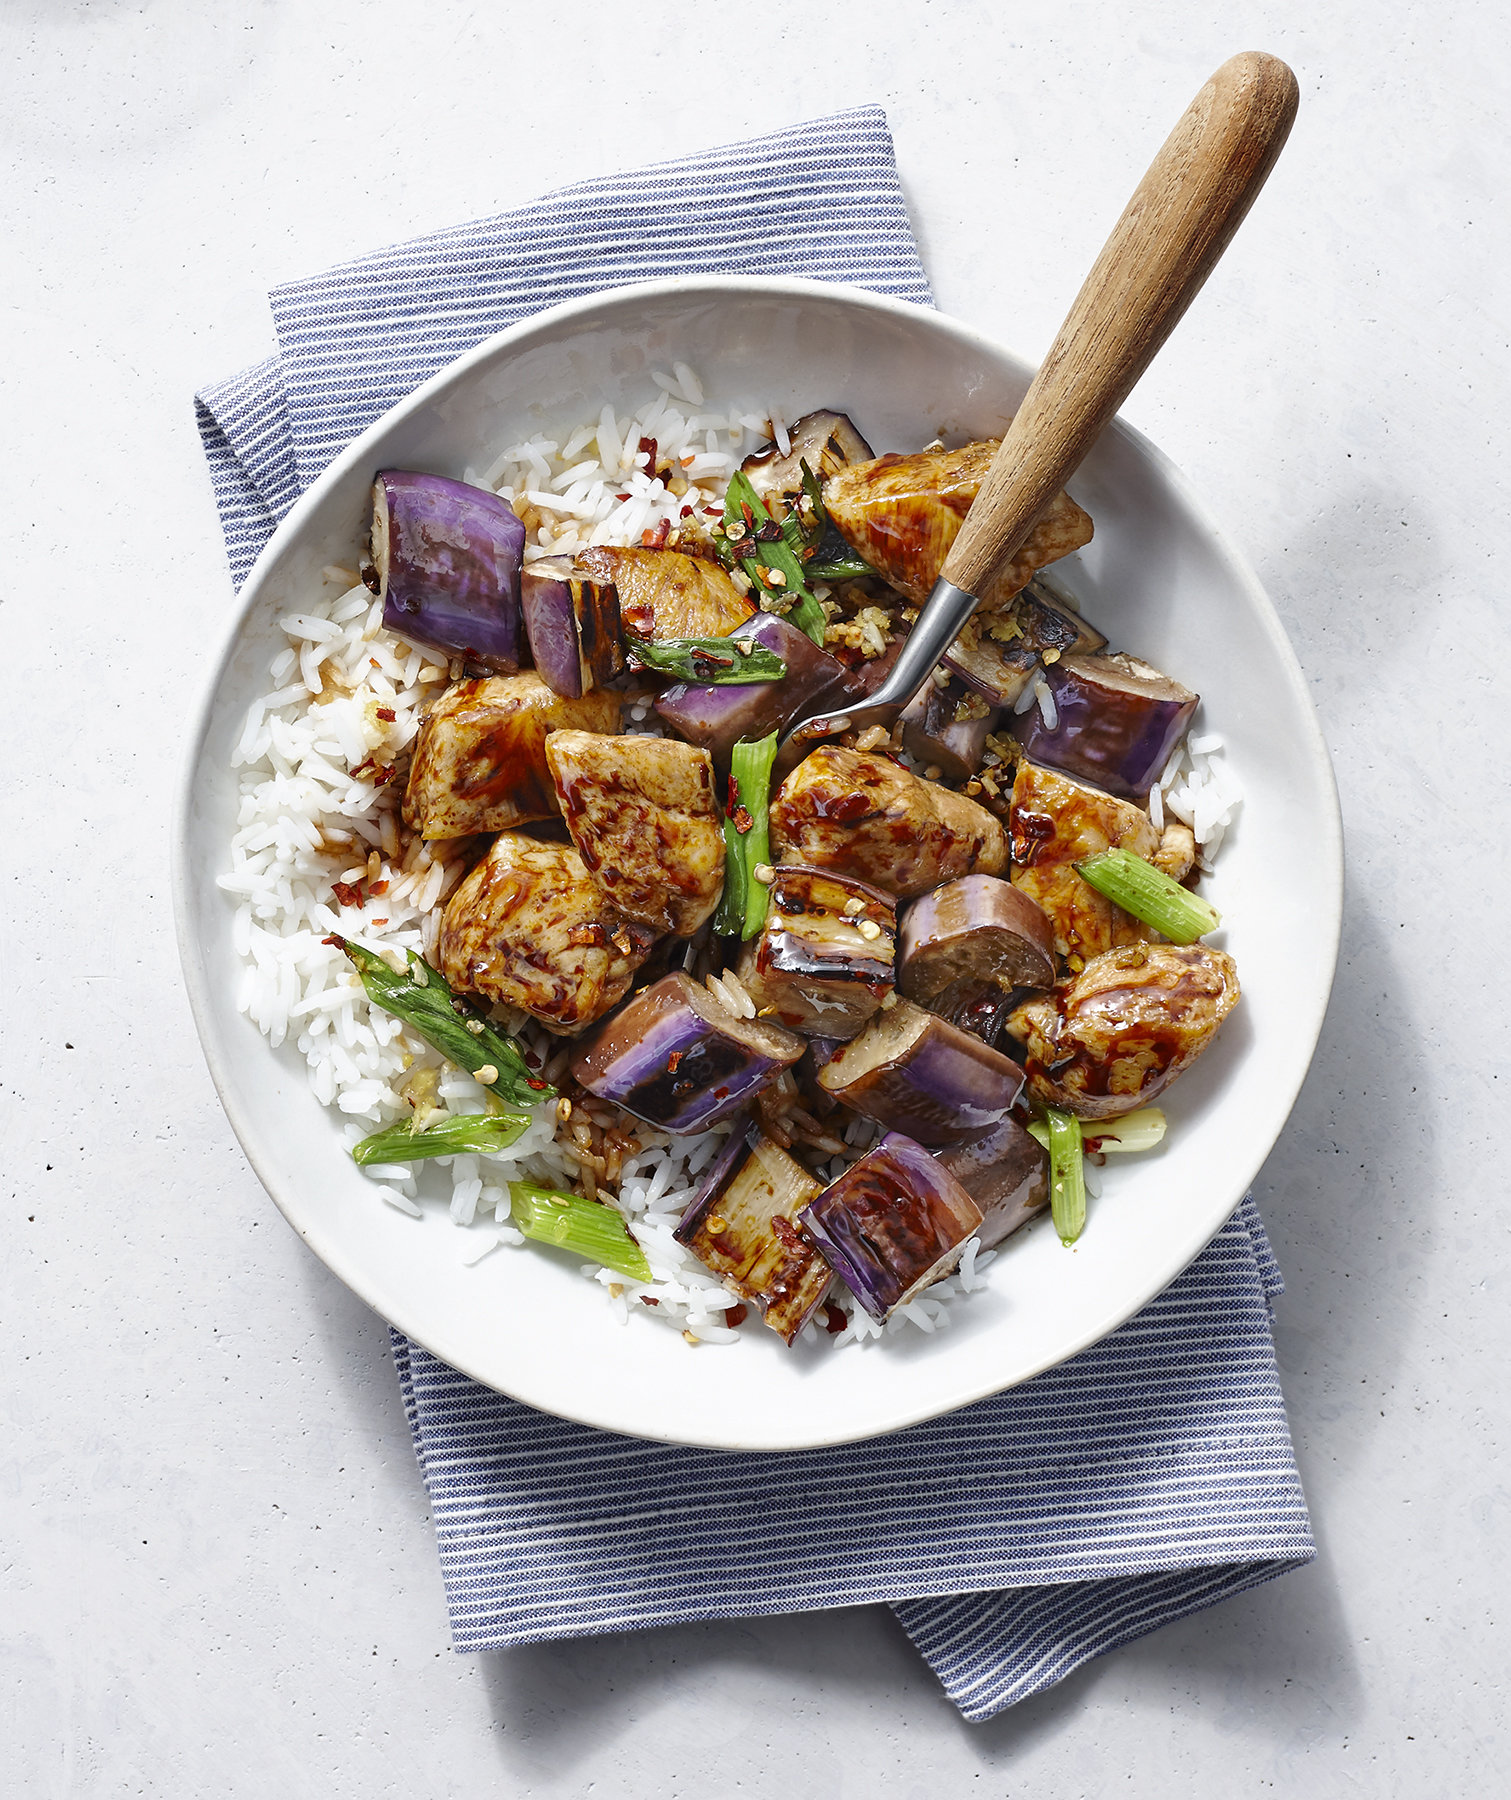 Spicy Chicken and Eggplant Stir-Fry | Real Simple